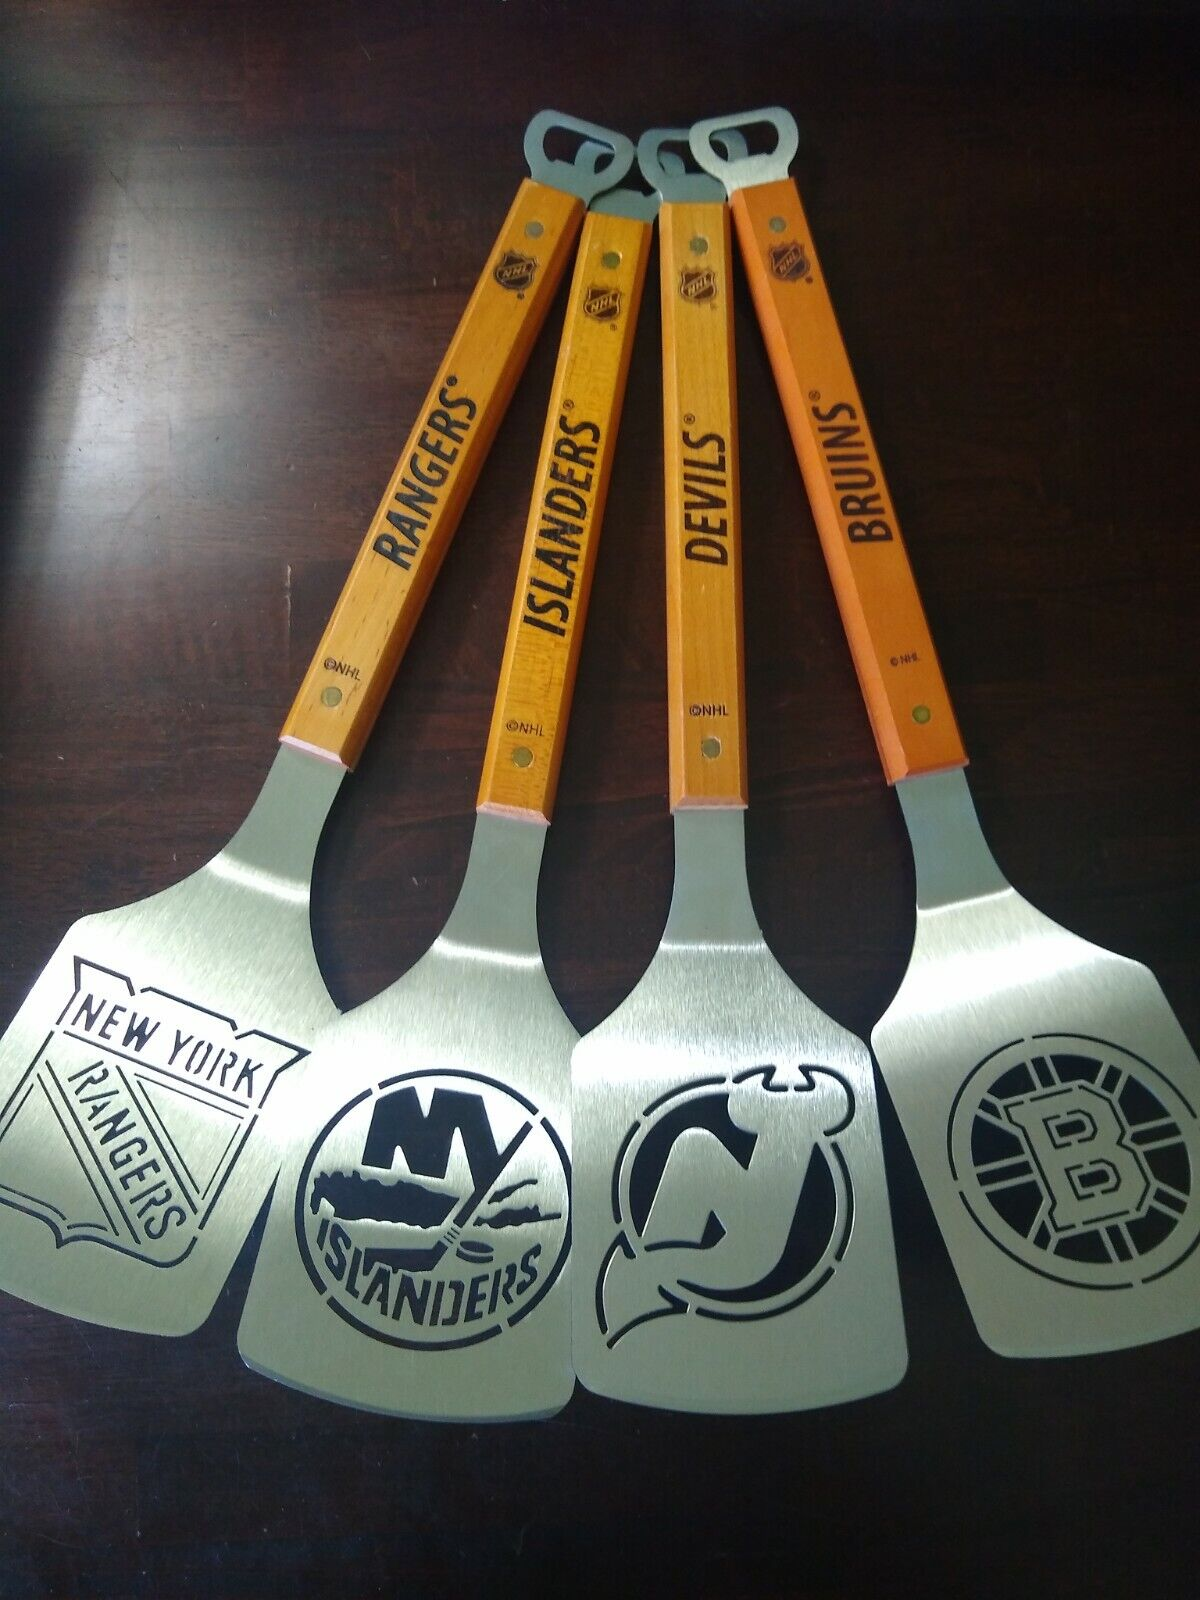 nhl stainless steel spatula grilling bbq tools